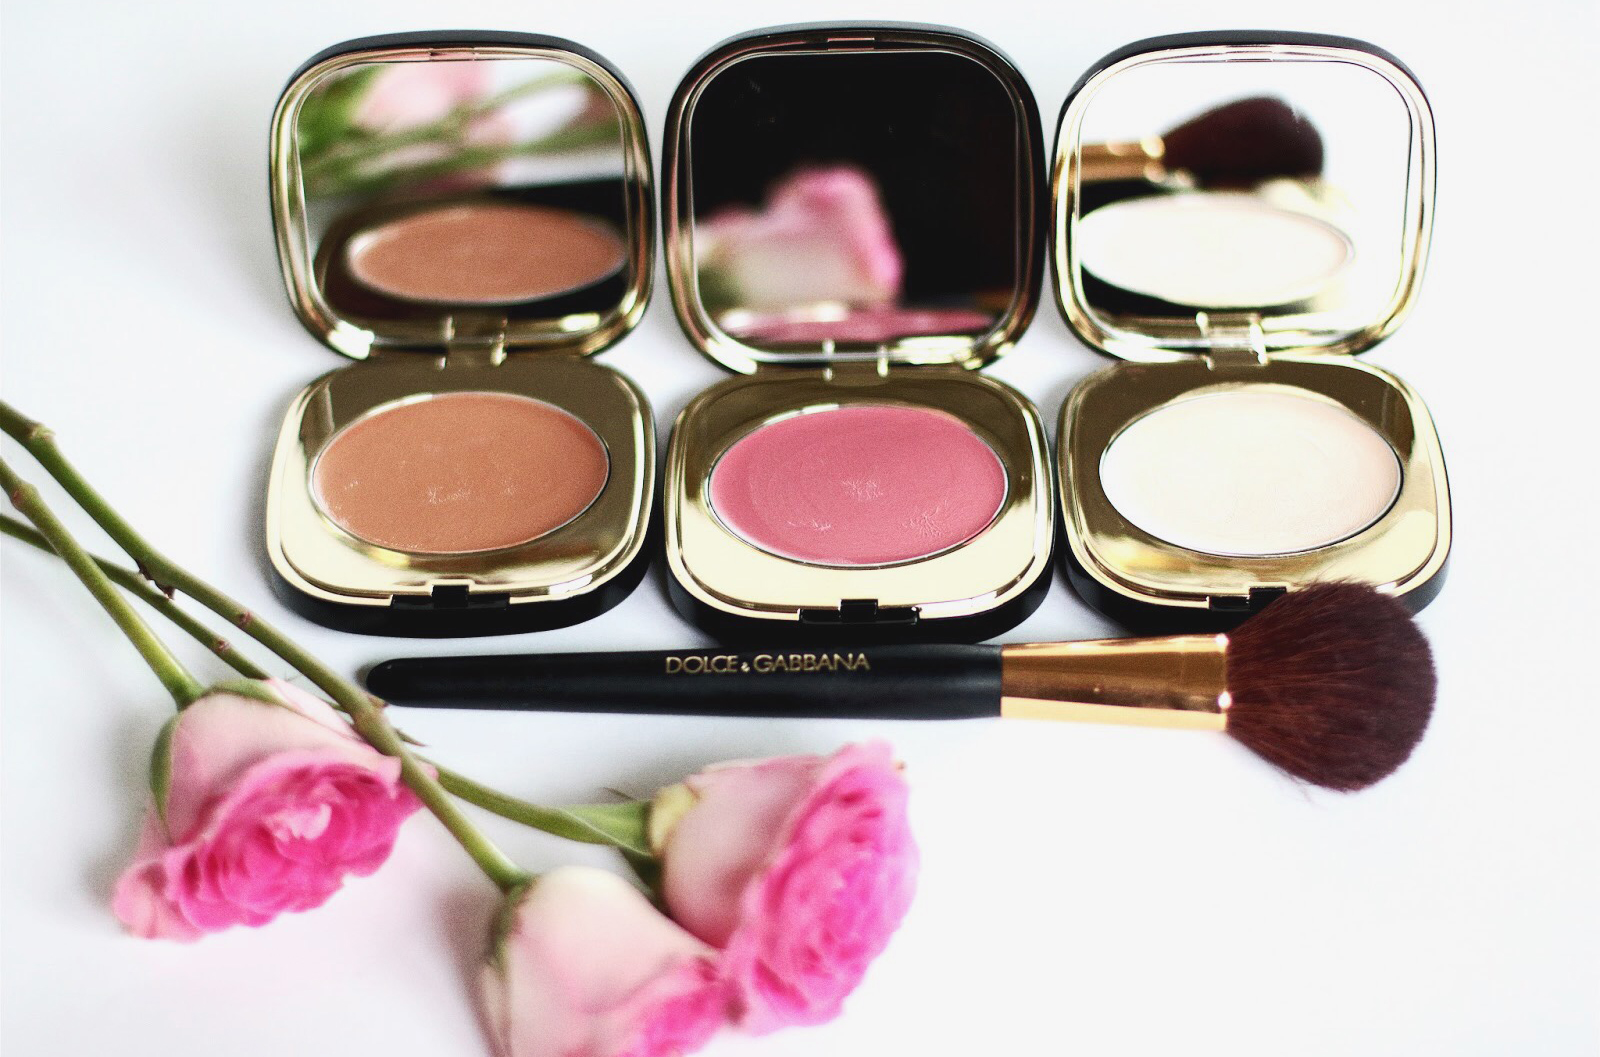 dolce gabbana blush of roses illuminator blush broner creme avis test swatch